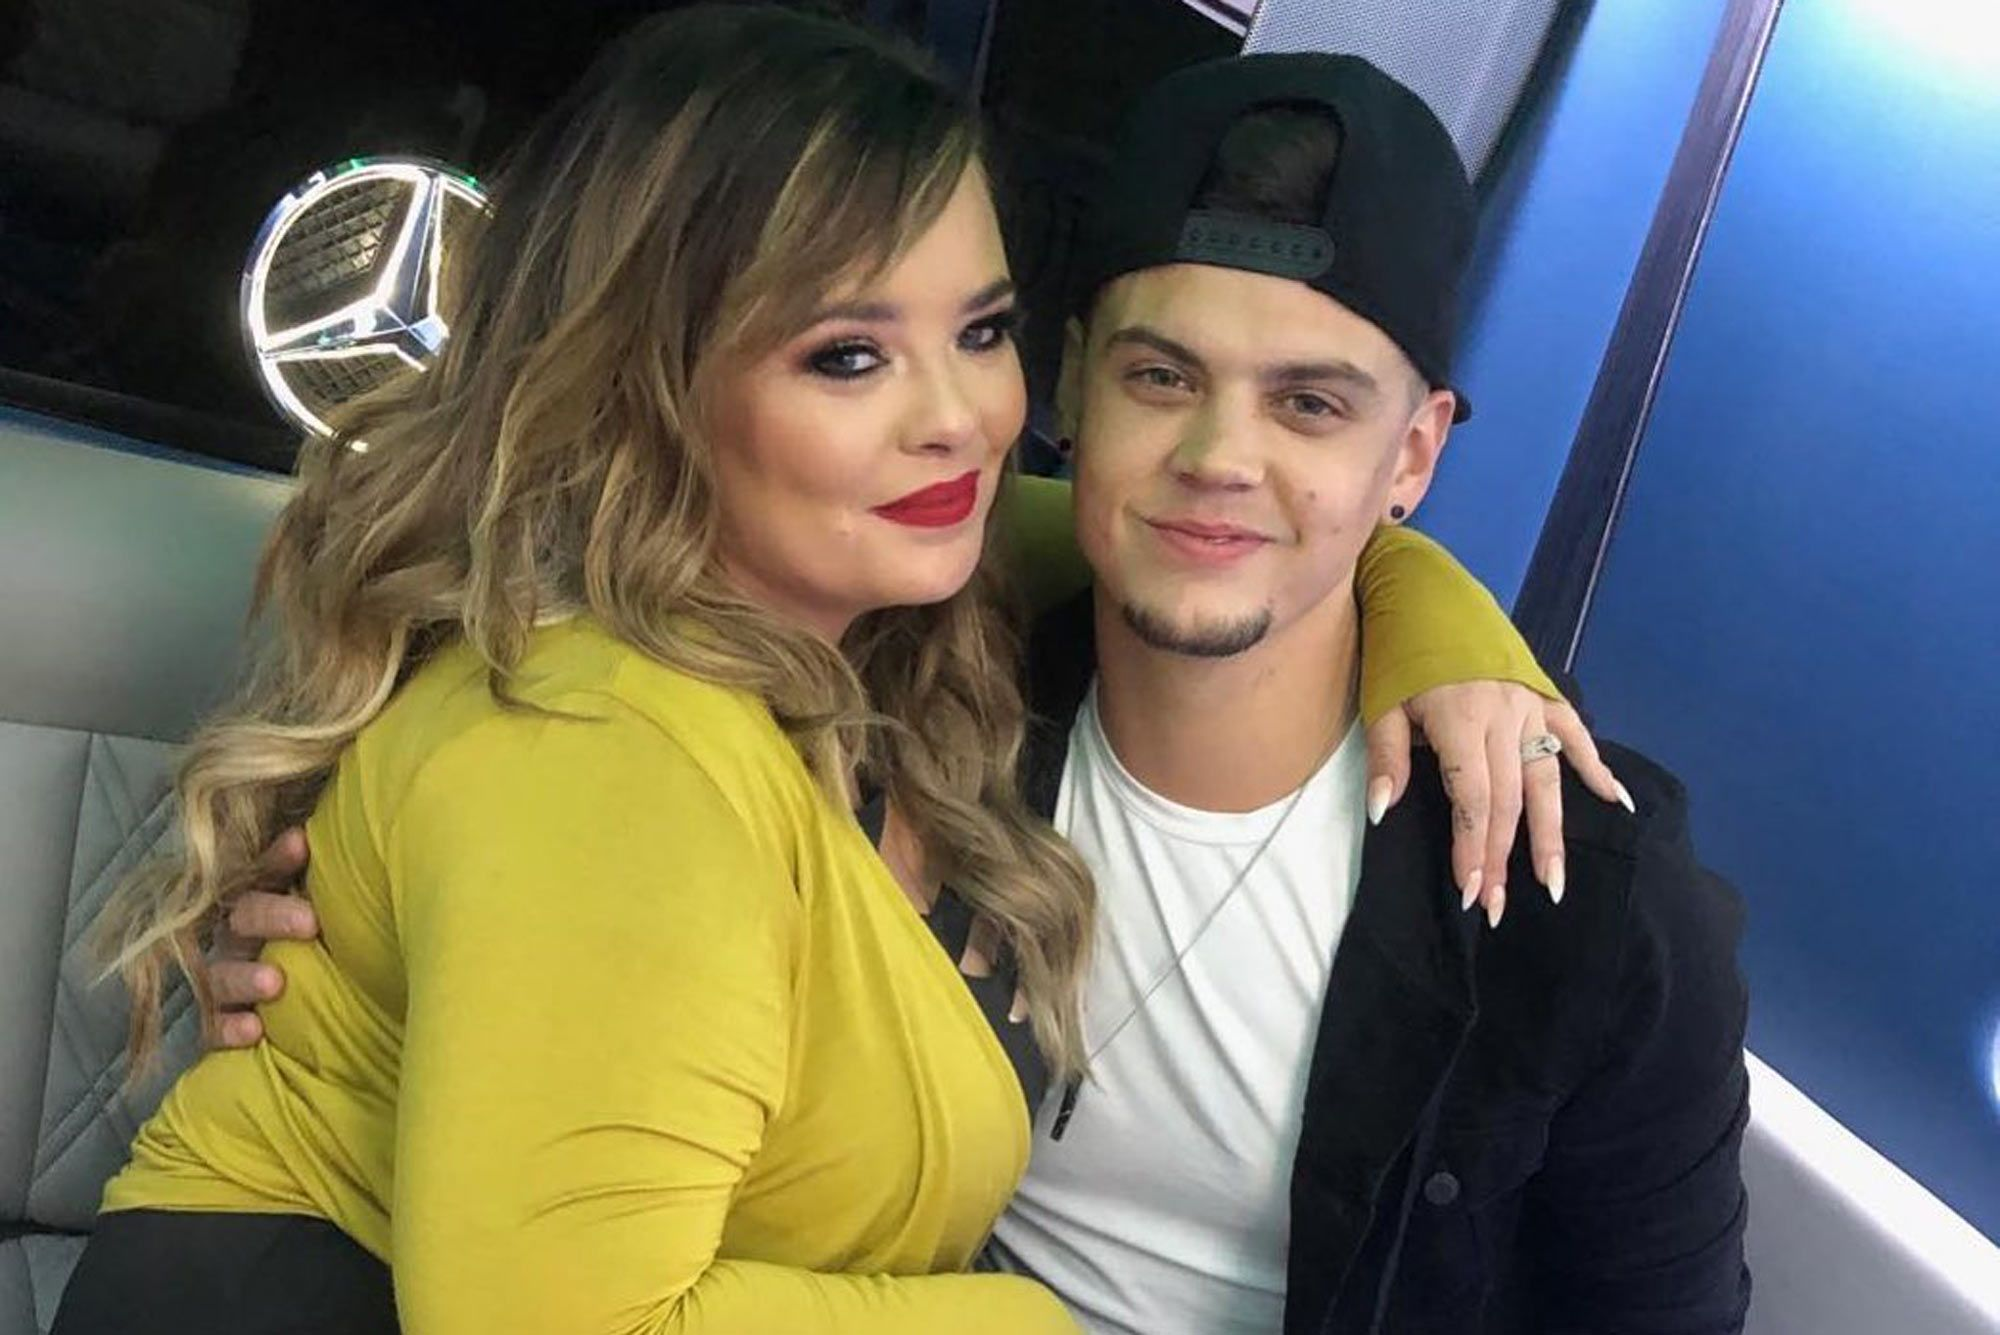 catelynn-lowell-and-tyler-baltierras-marriage-reportedly-refreshed-by-new-pregnancy-heres-how